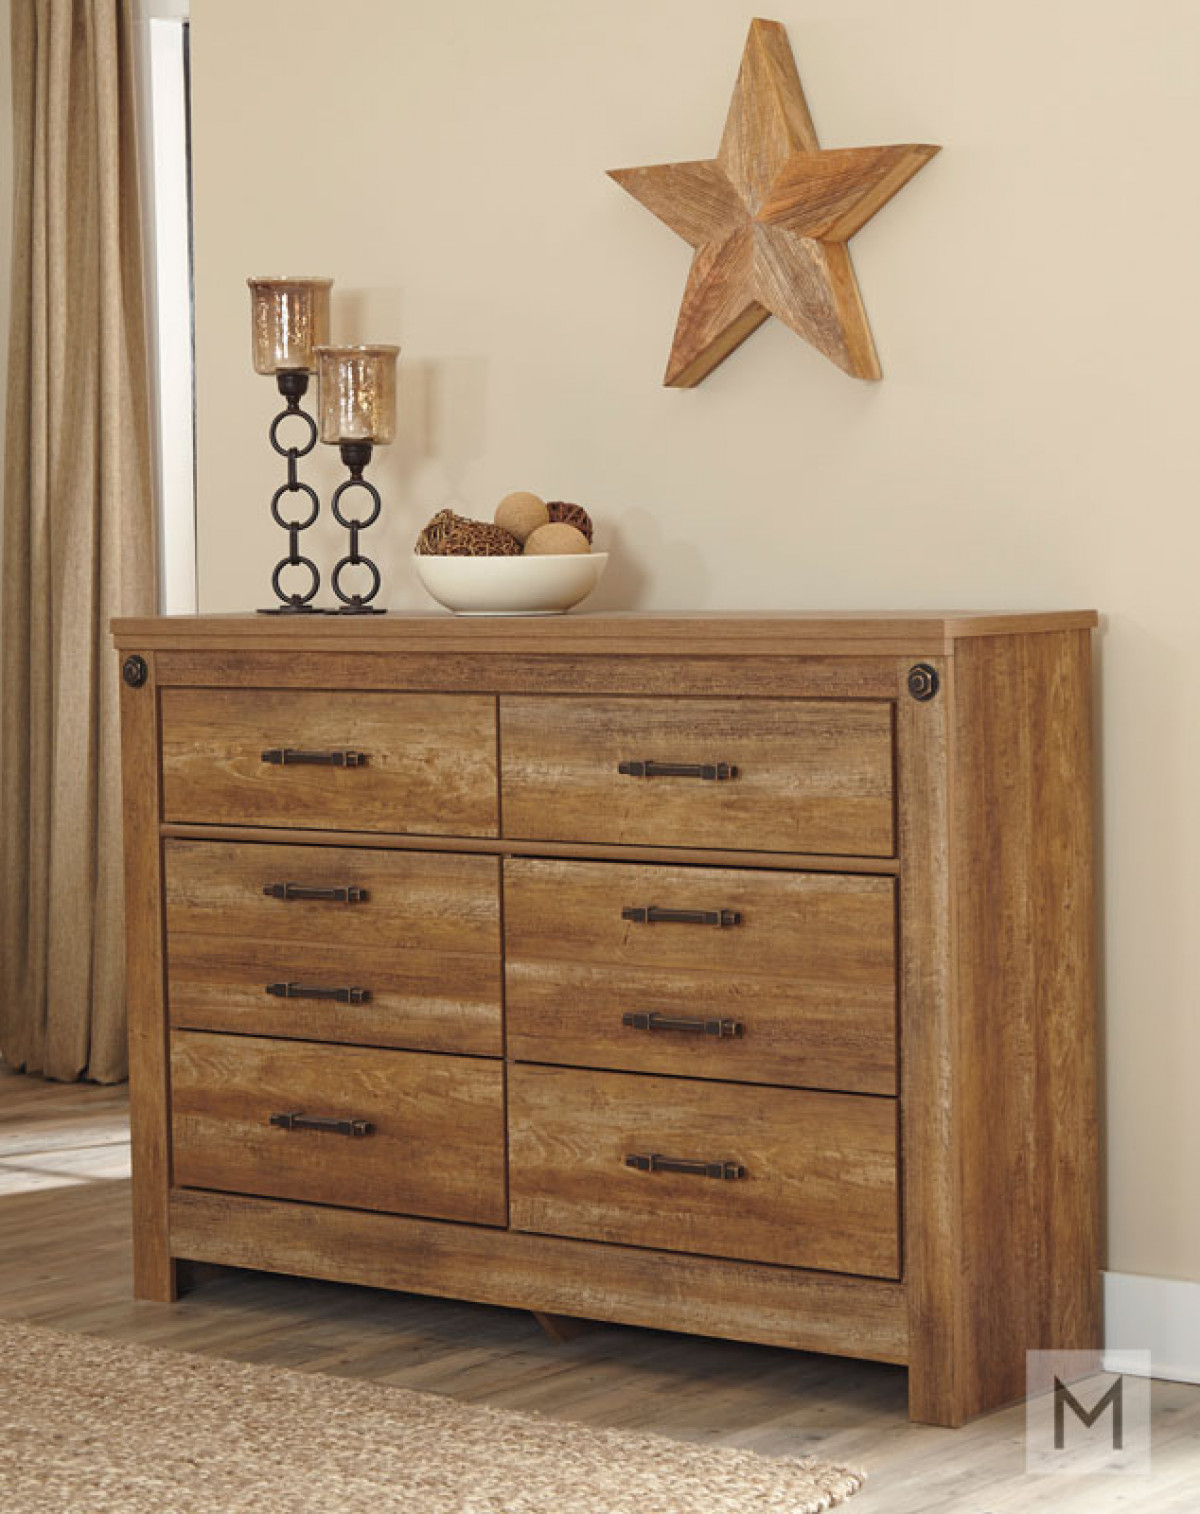 Ladimier Six Drawer Dresser in Golden Brown with a Rustic Finish